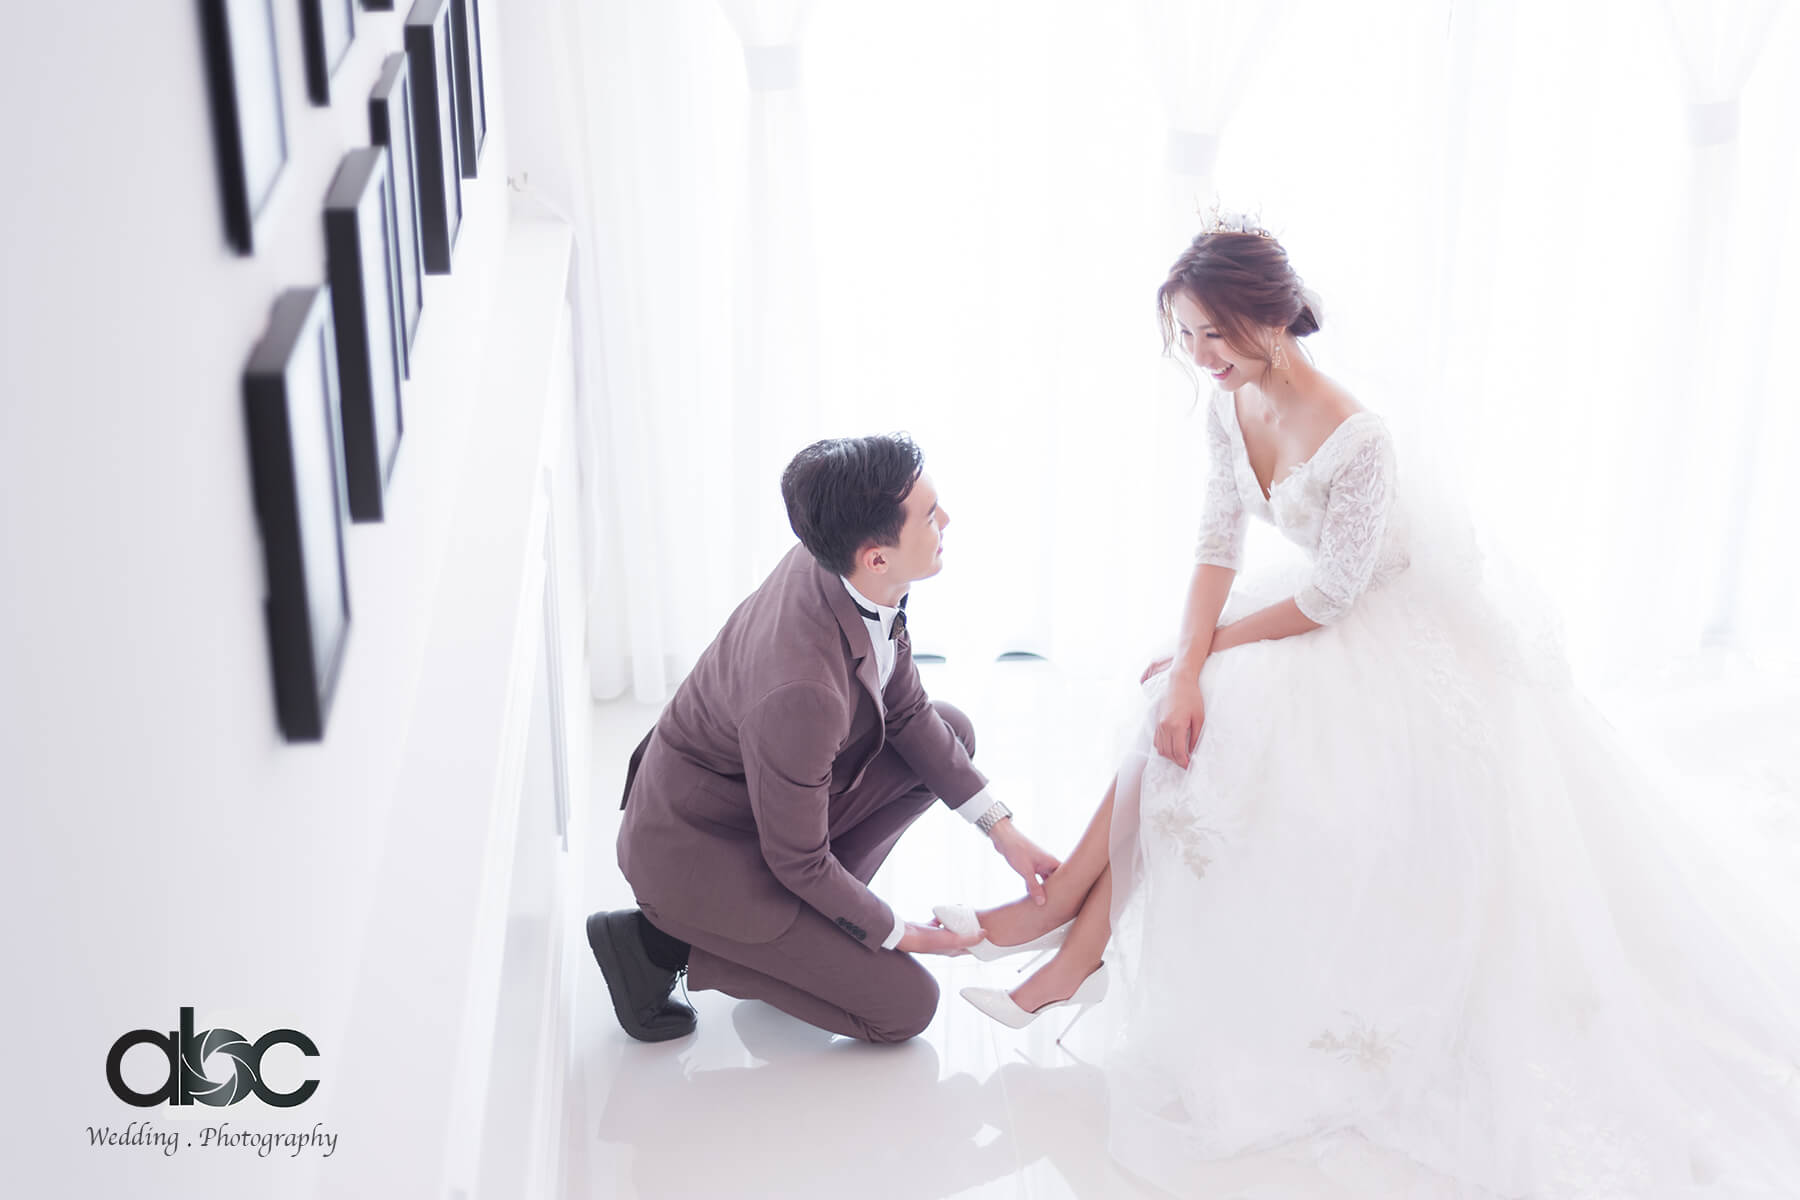 Wedding Photography | ABC Photography